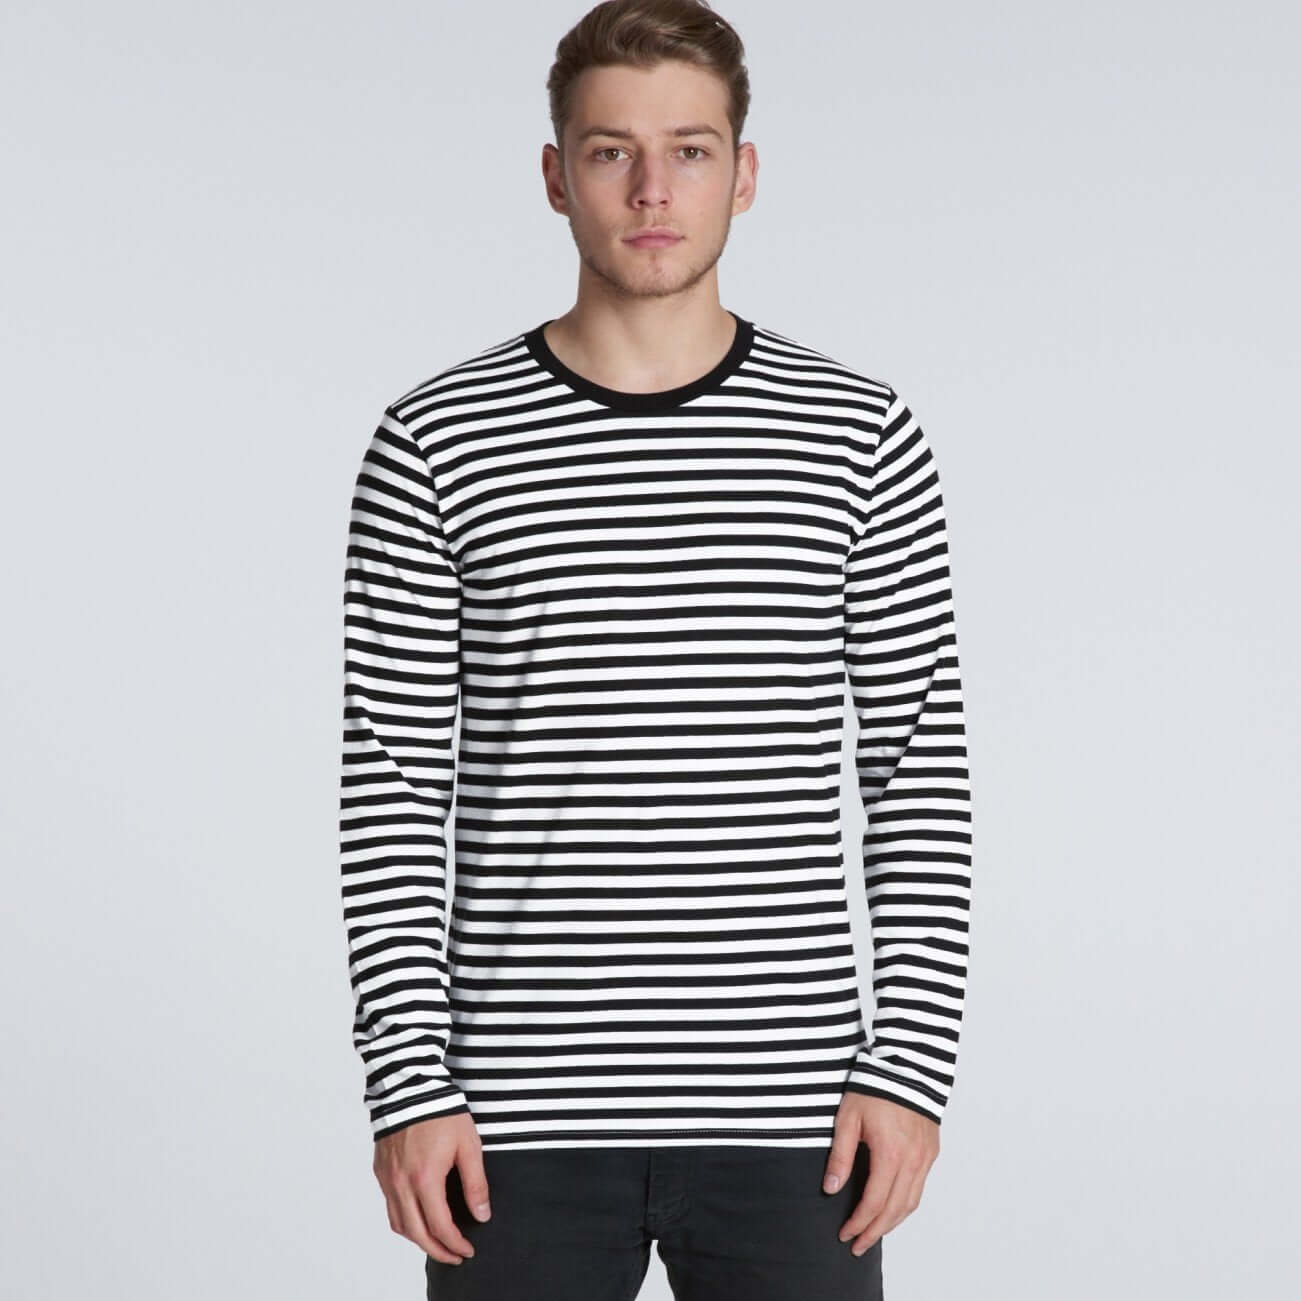 AS Colour MATCH STRIPE L/S TEE - Black/White